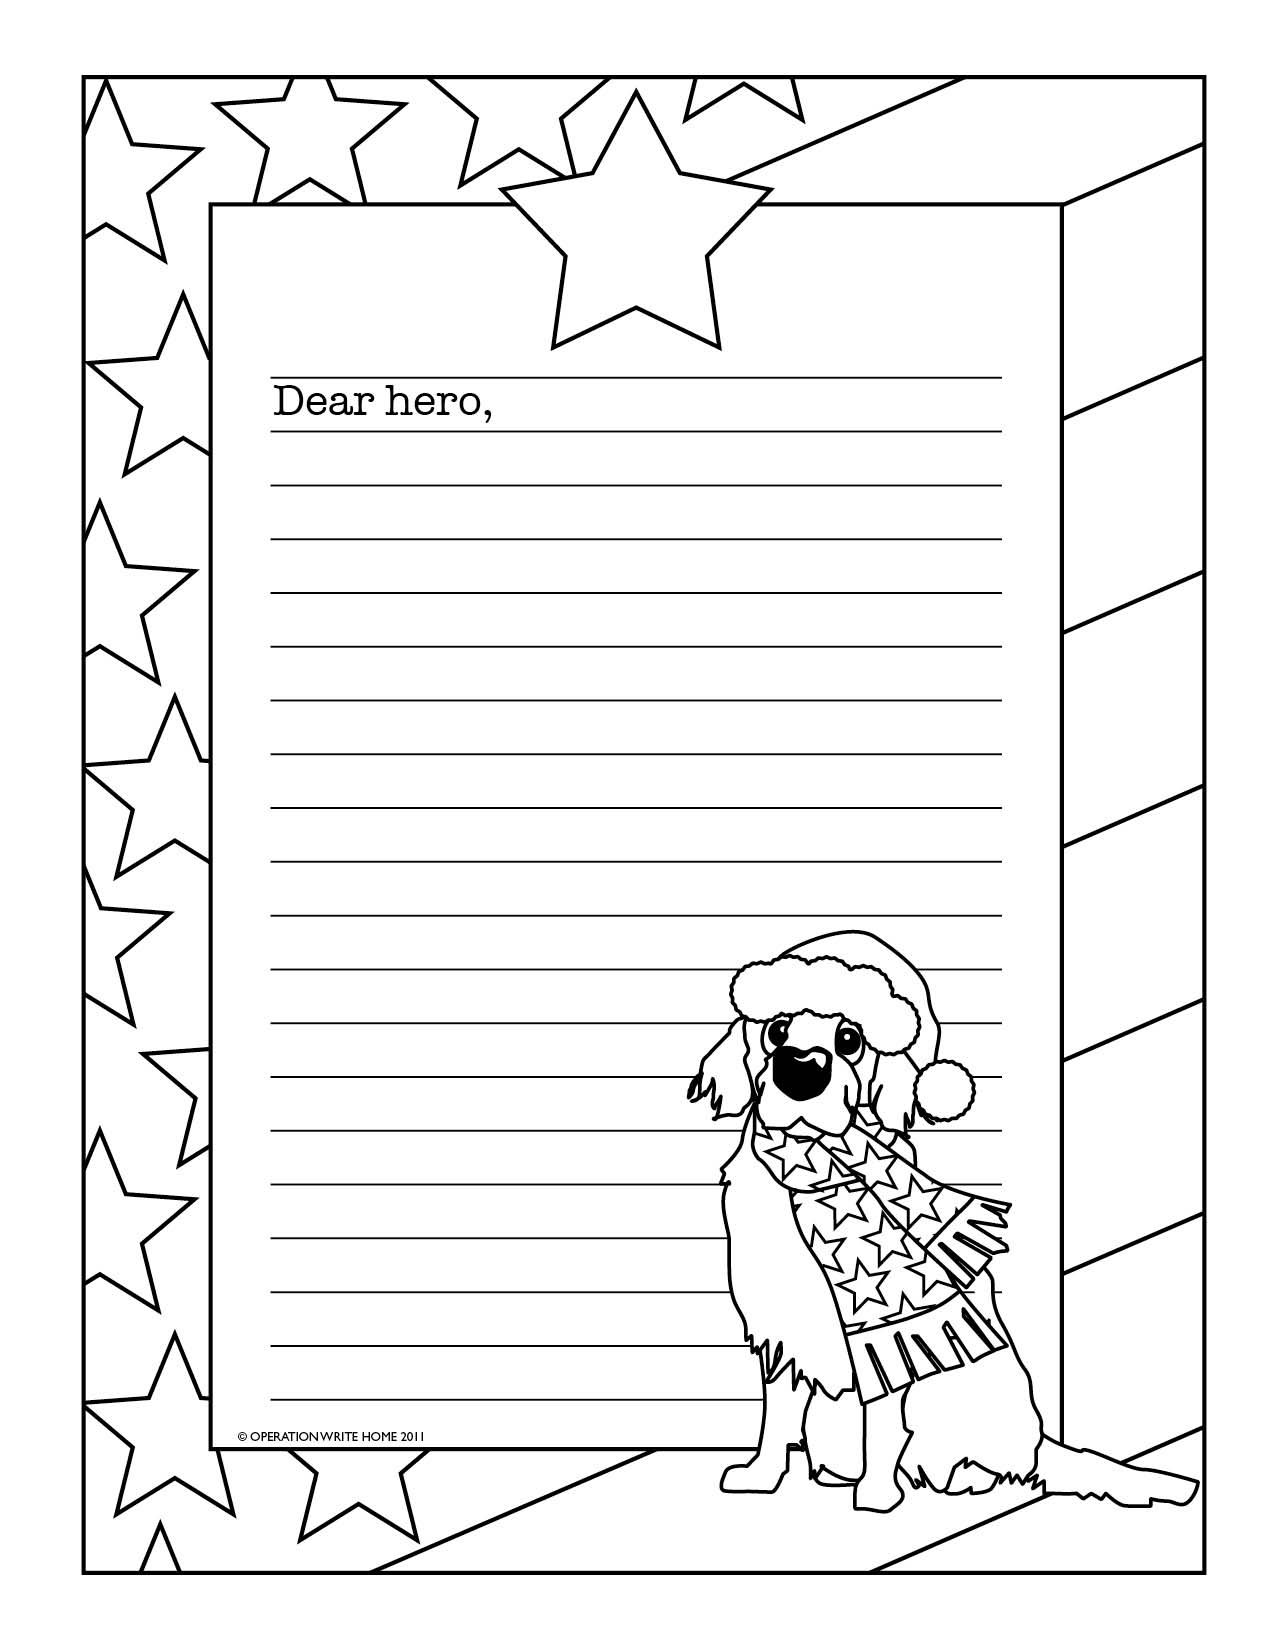 Coloring Pages With Images Military Christmas Cards Coloring